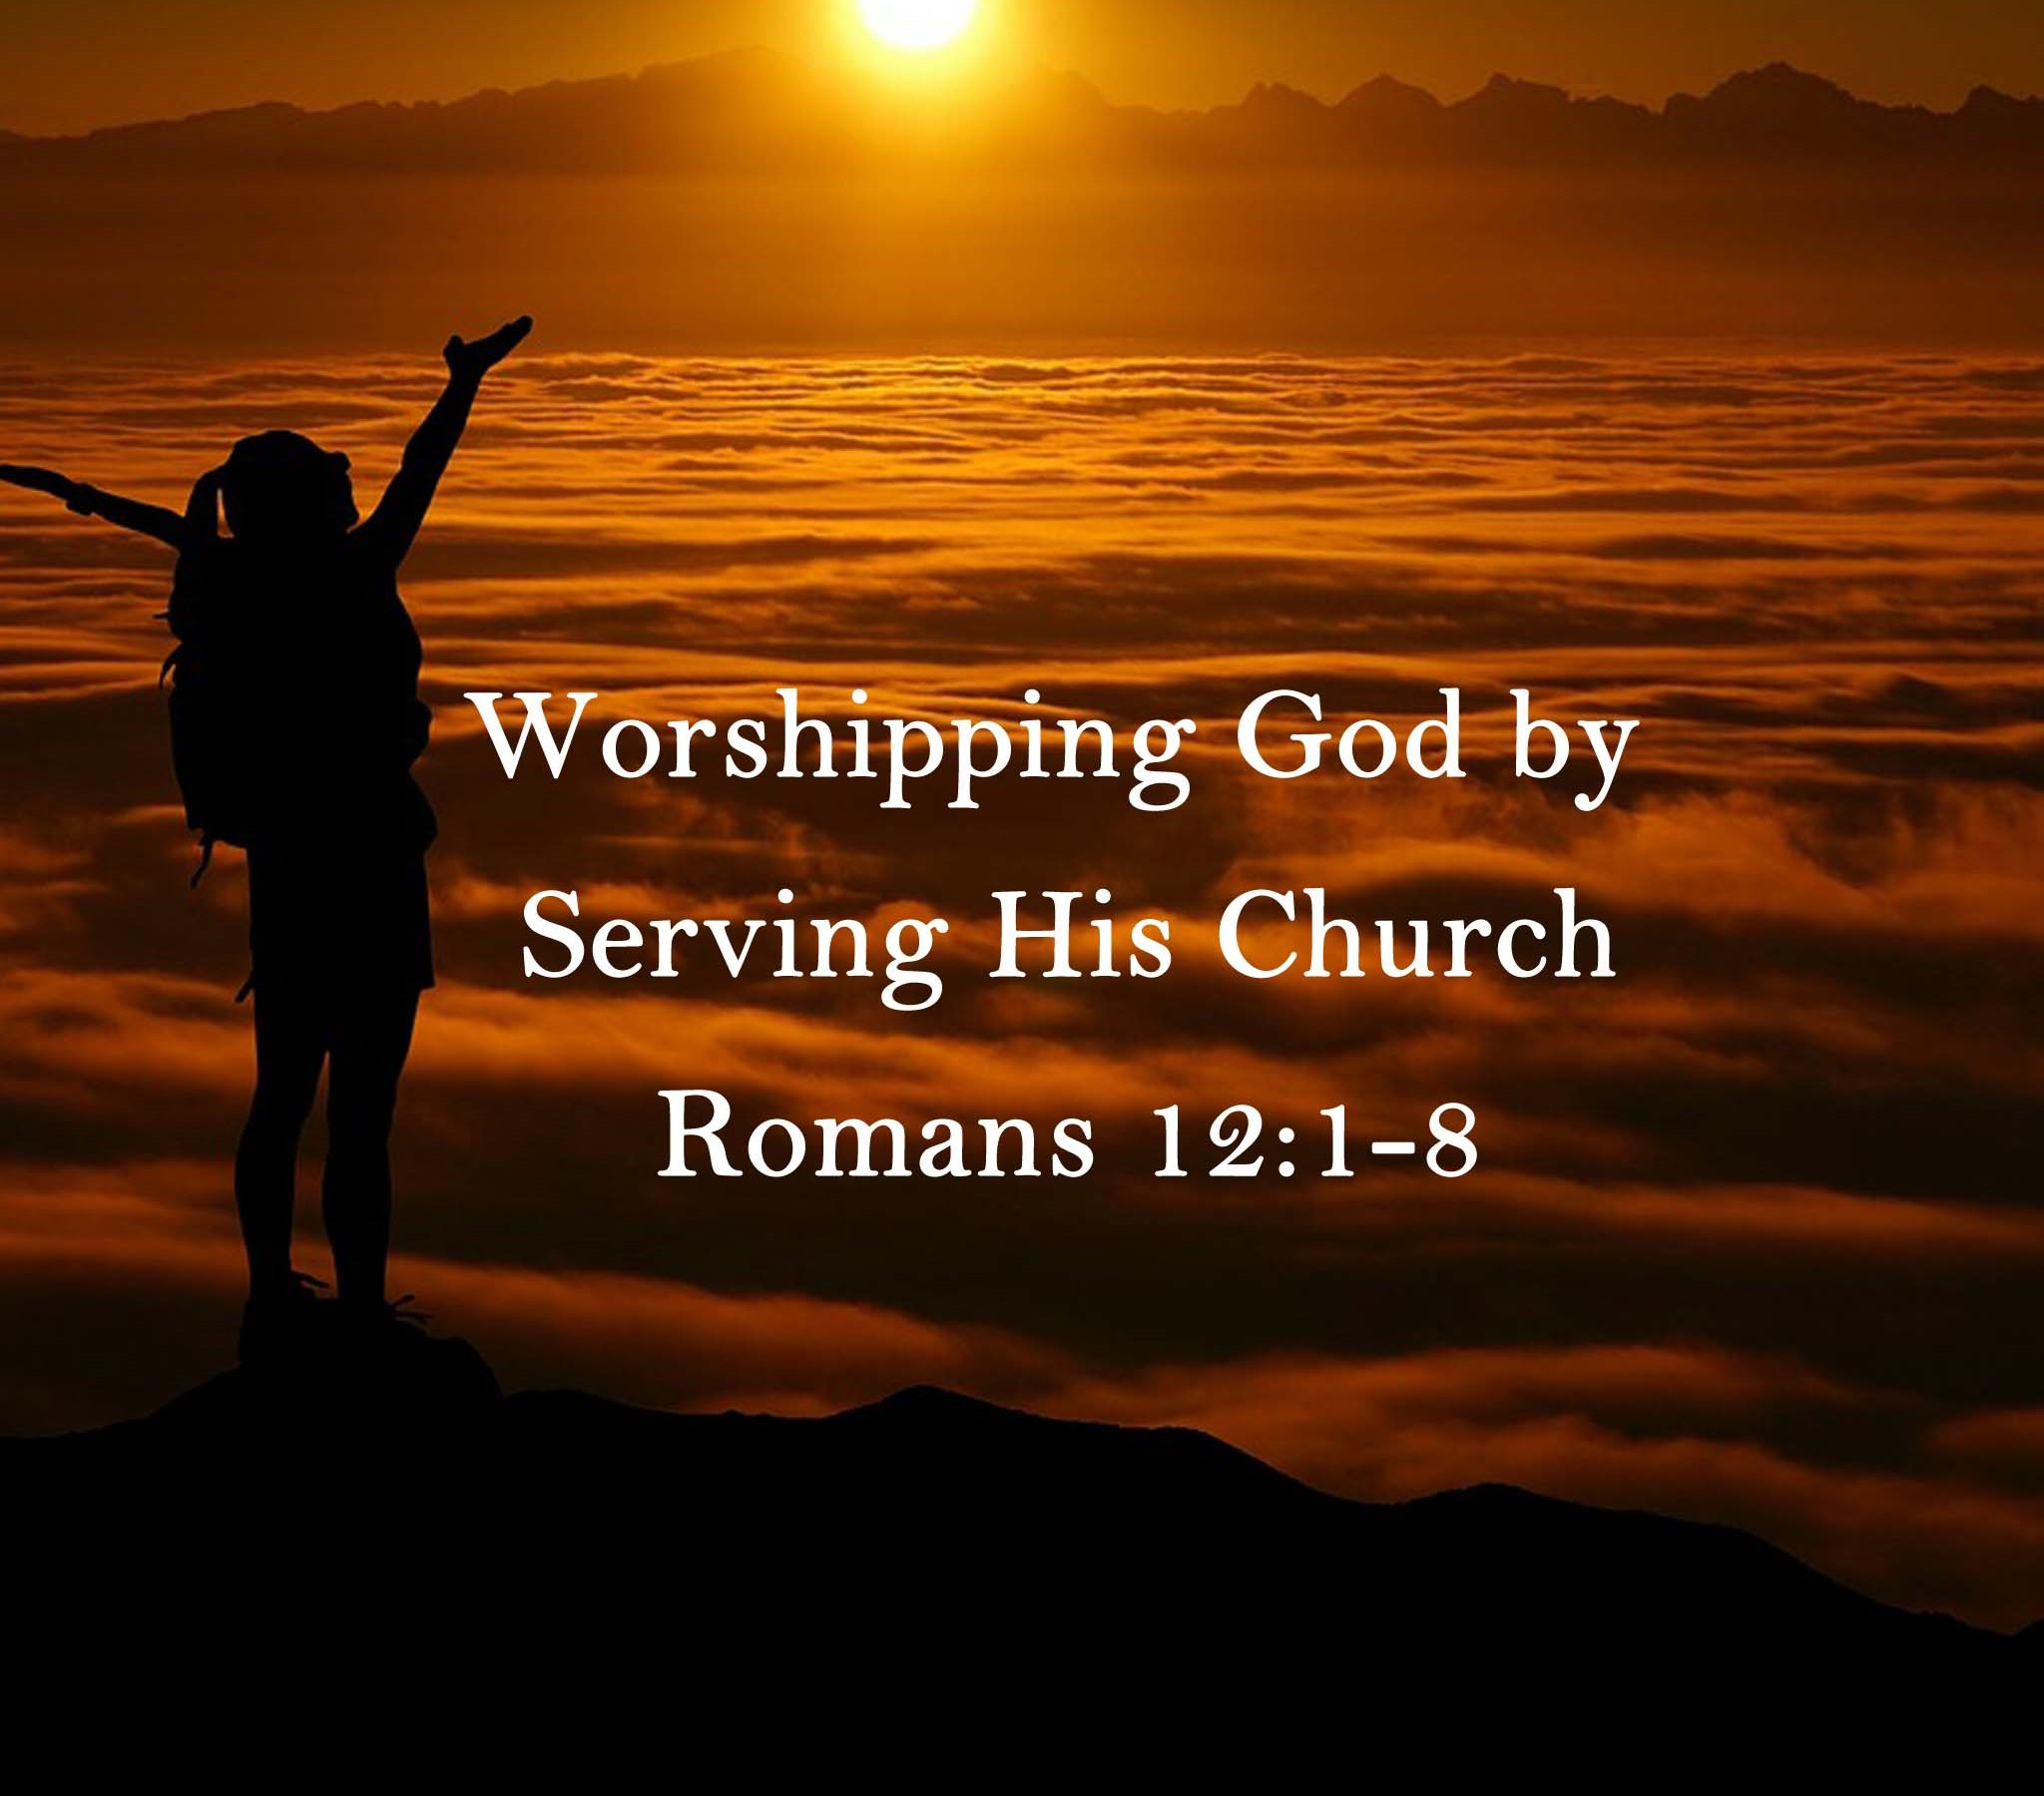 Sermon: Worshipping God by Serving His Church Romans 12:1-8